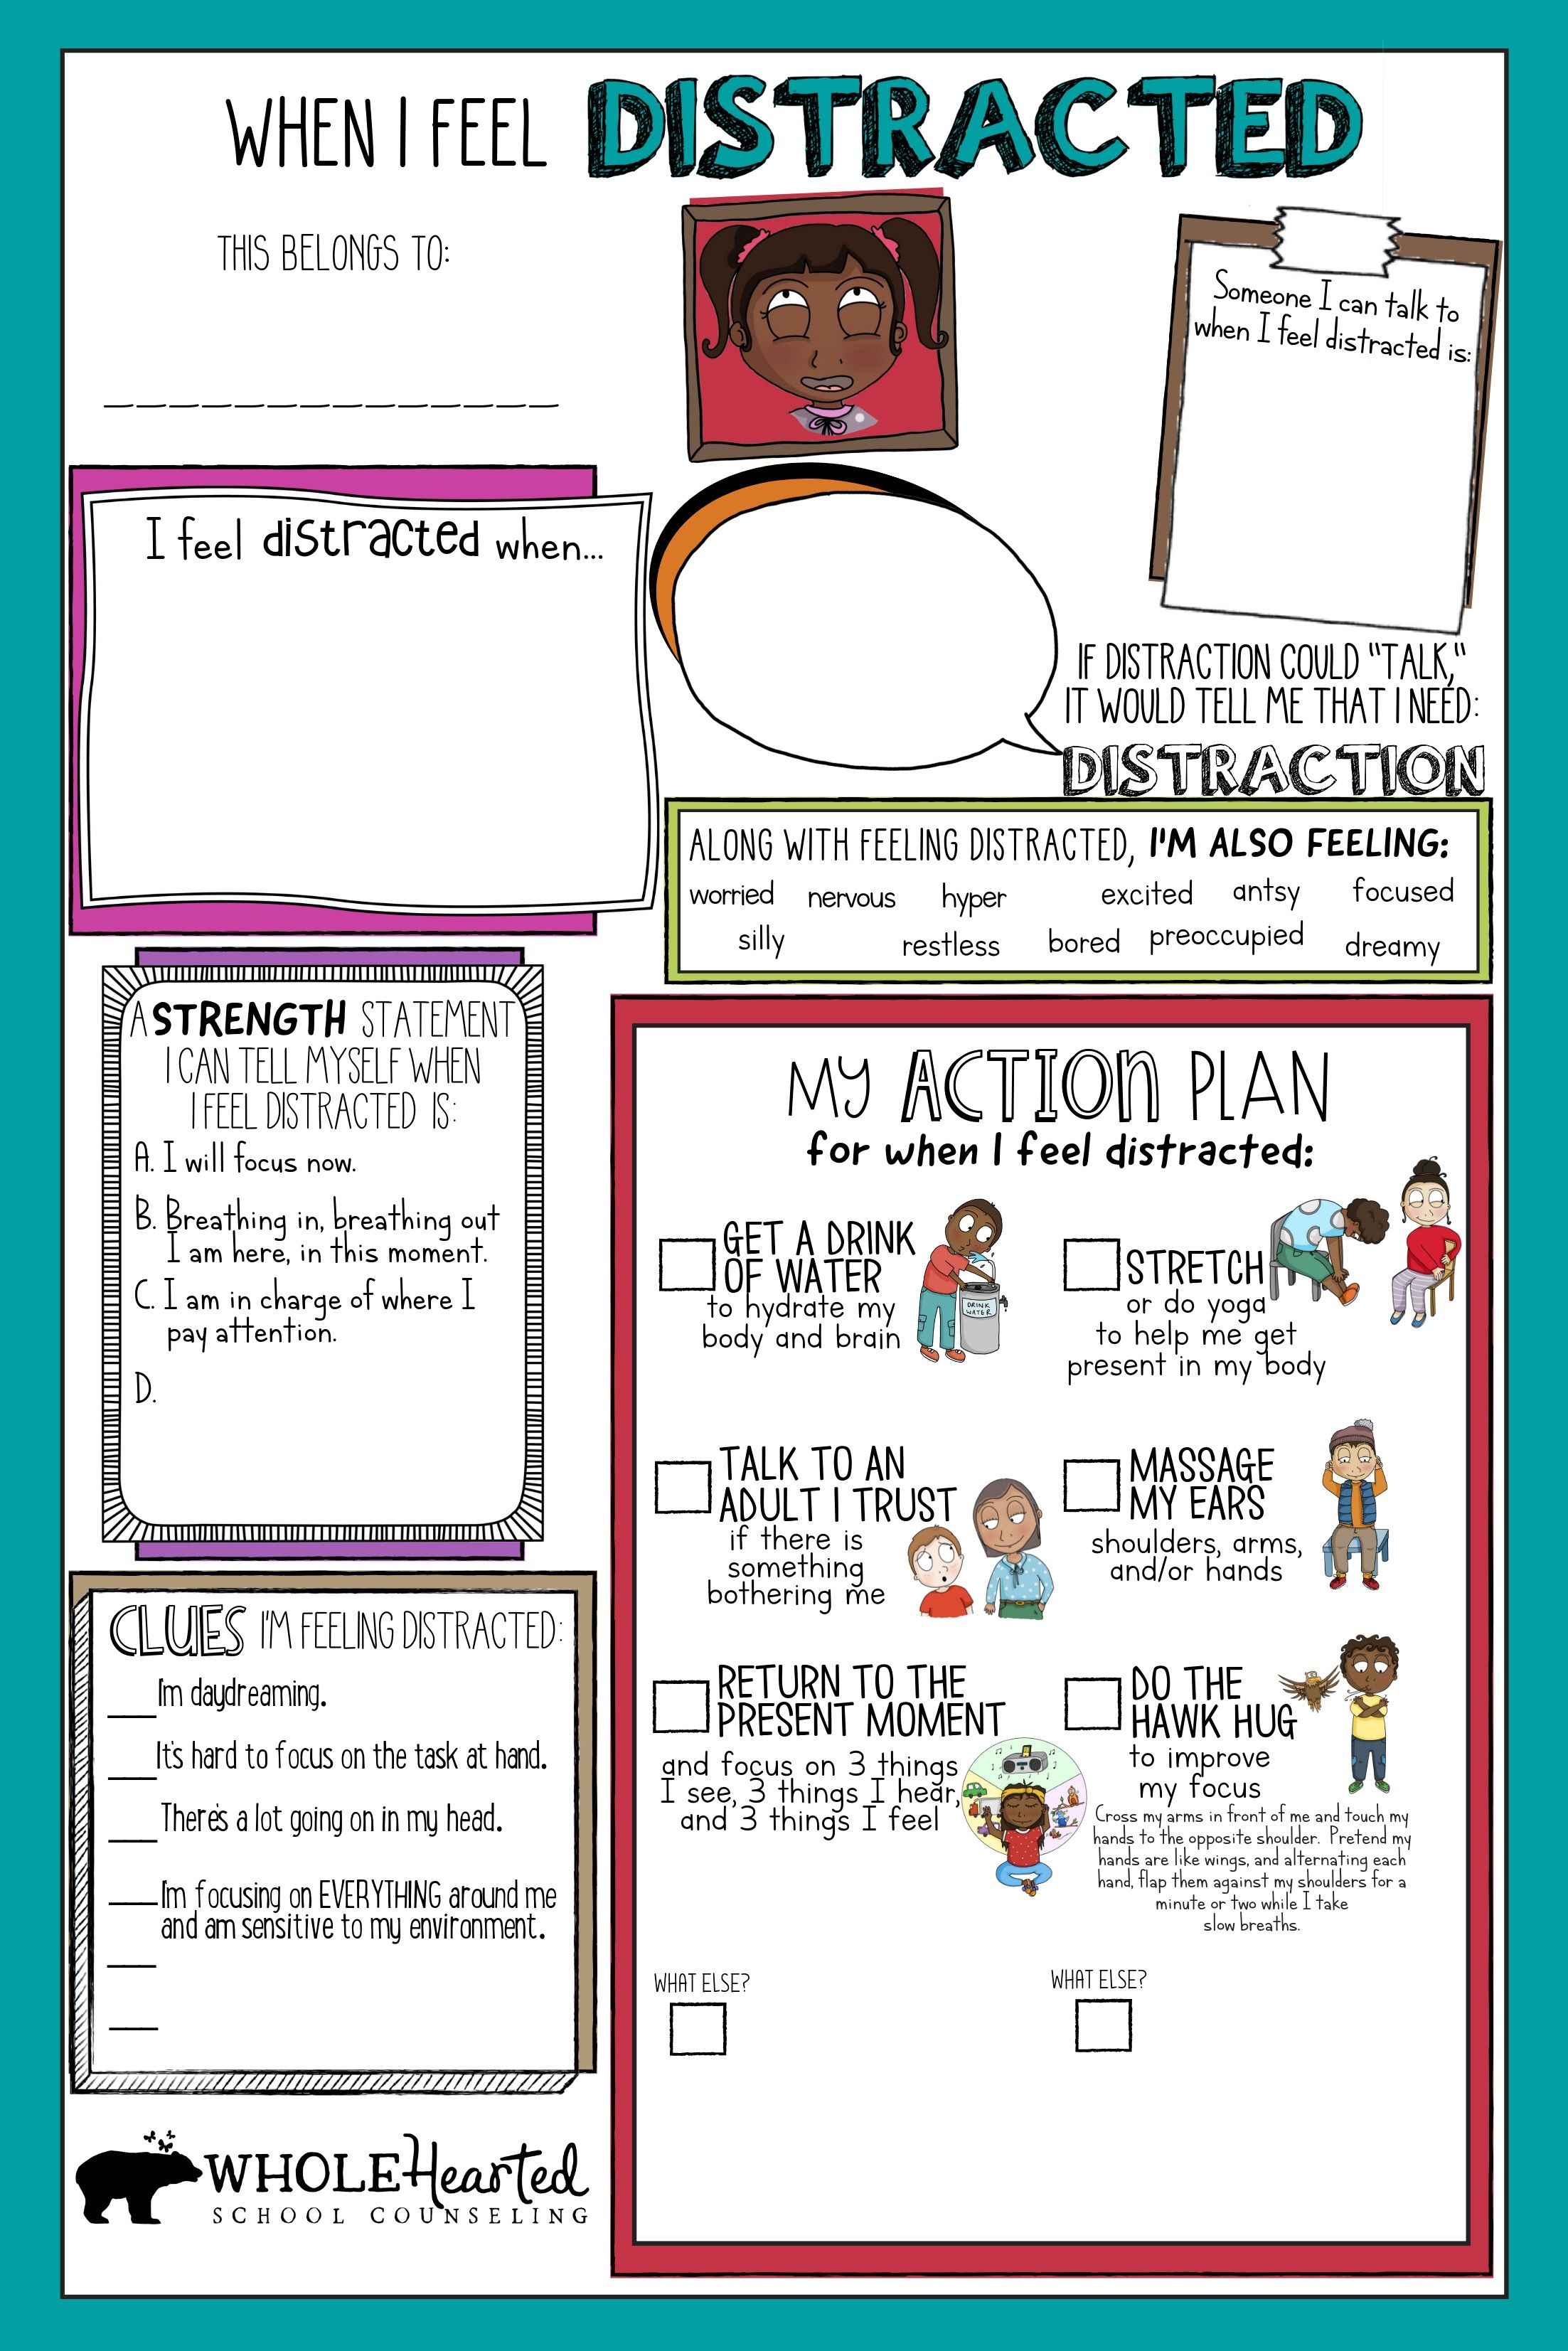 Action Plan Worksheets For 29 Different Feelings Included In Coping Skills Book For School Social Emotional Learning Coping Skills Coping Skills Worksheets